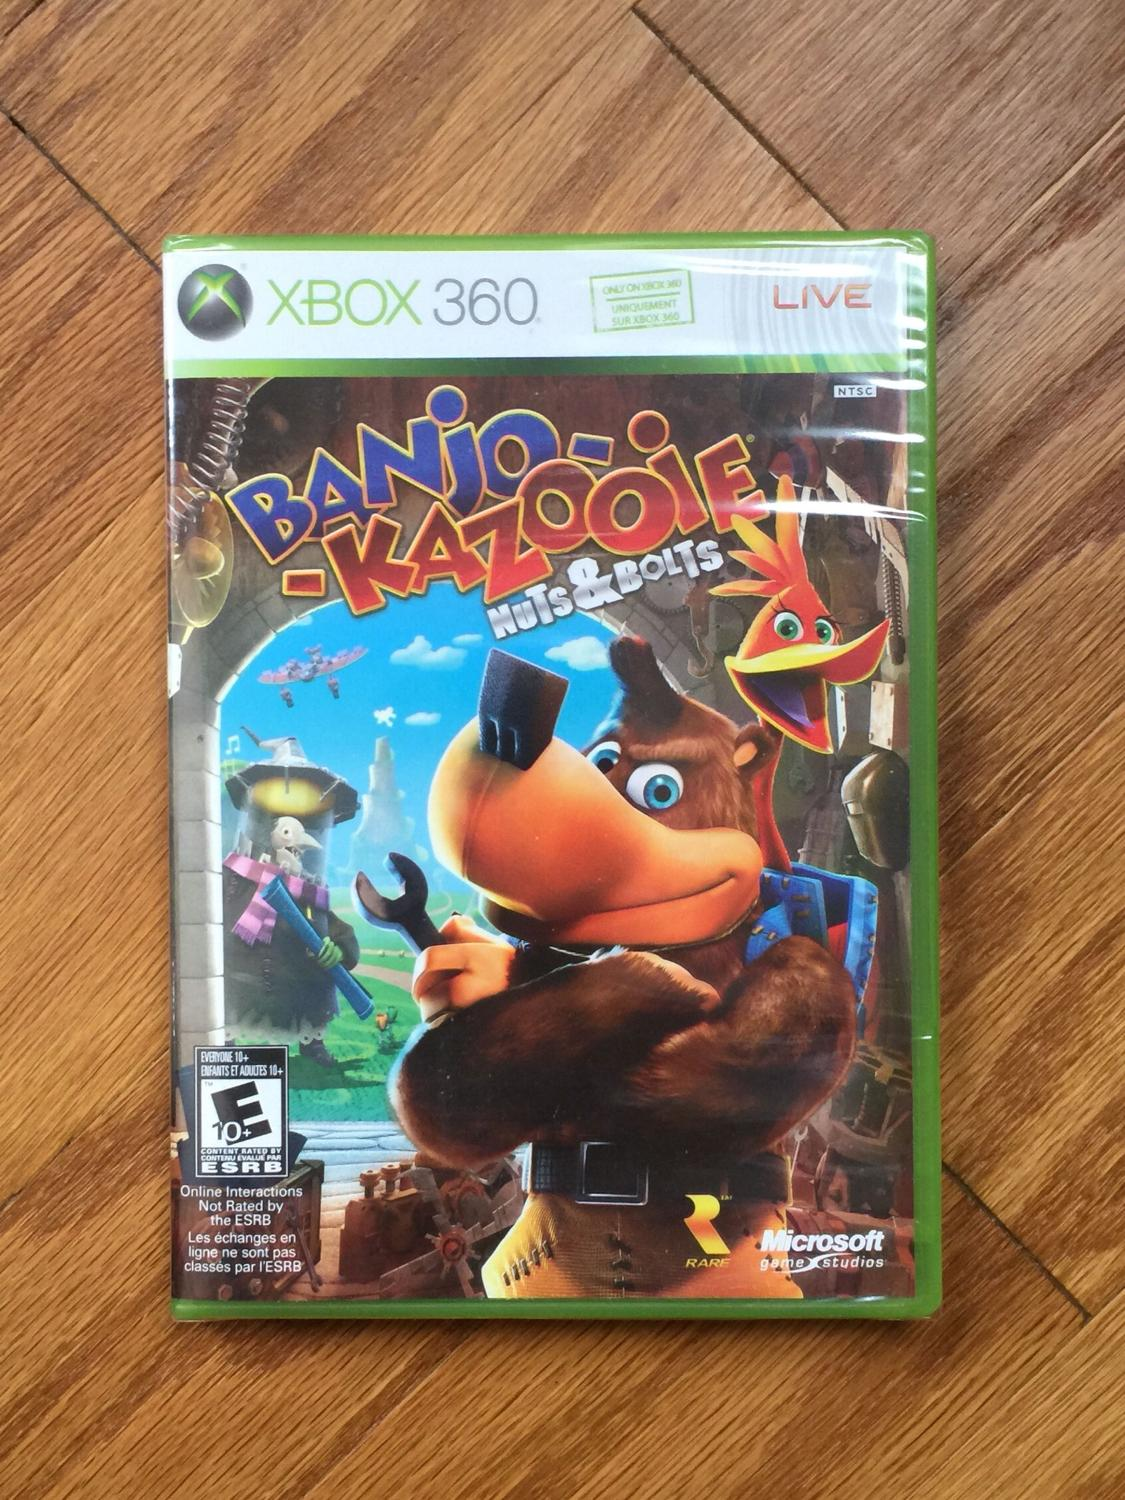 Banjo-Kazooie: Nuts & Bolts (Xbox 360) -Unopened